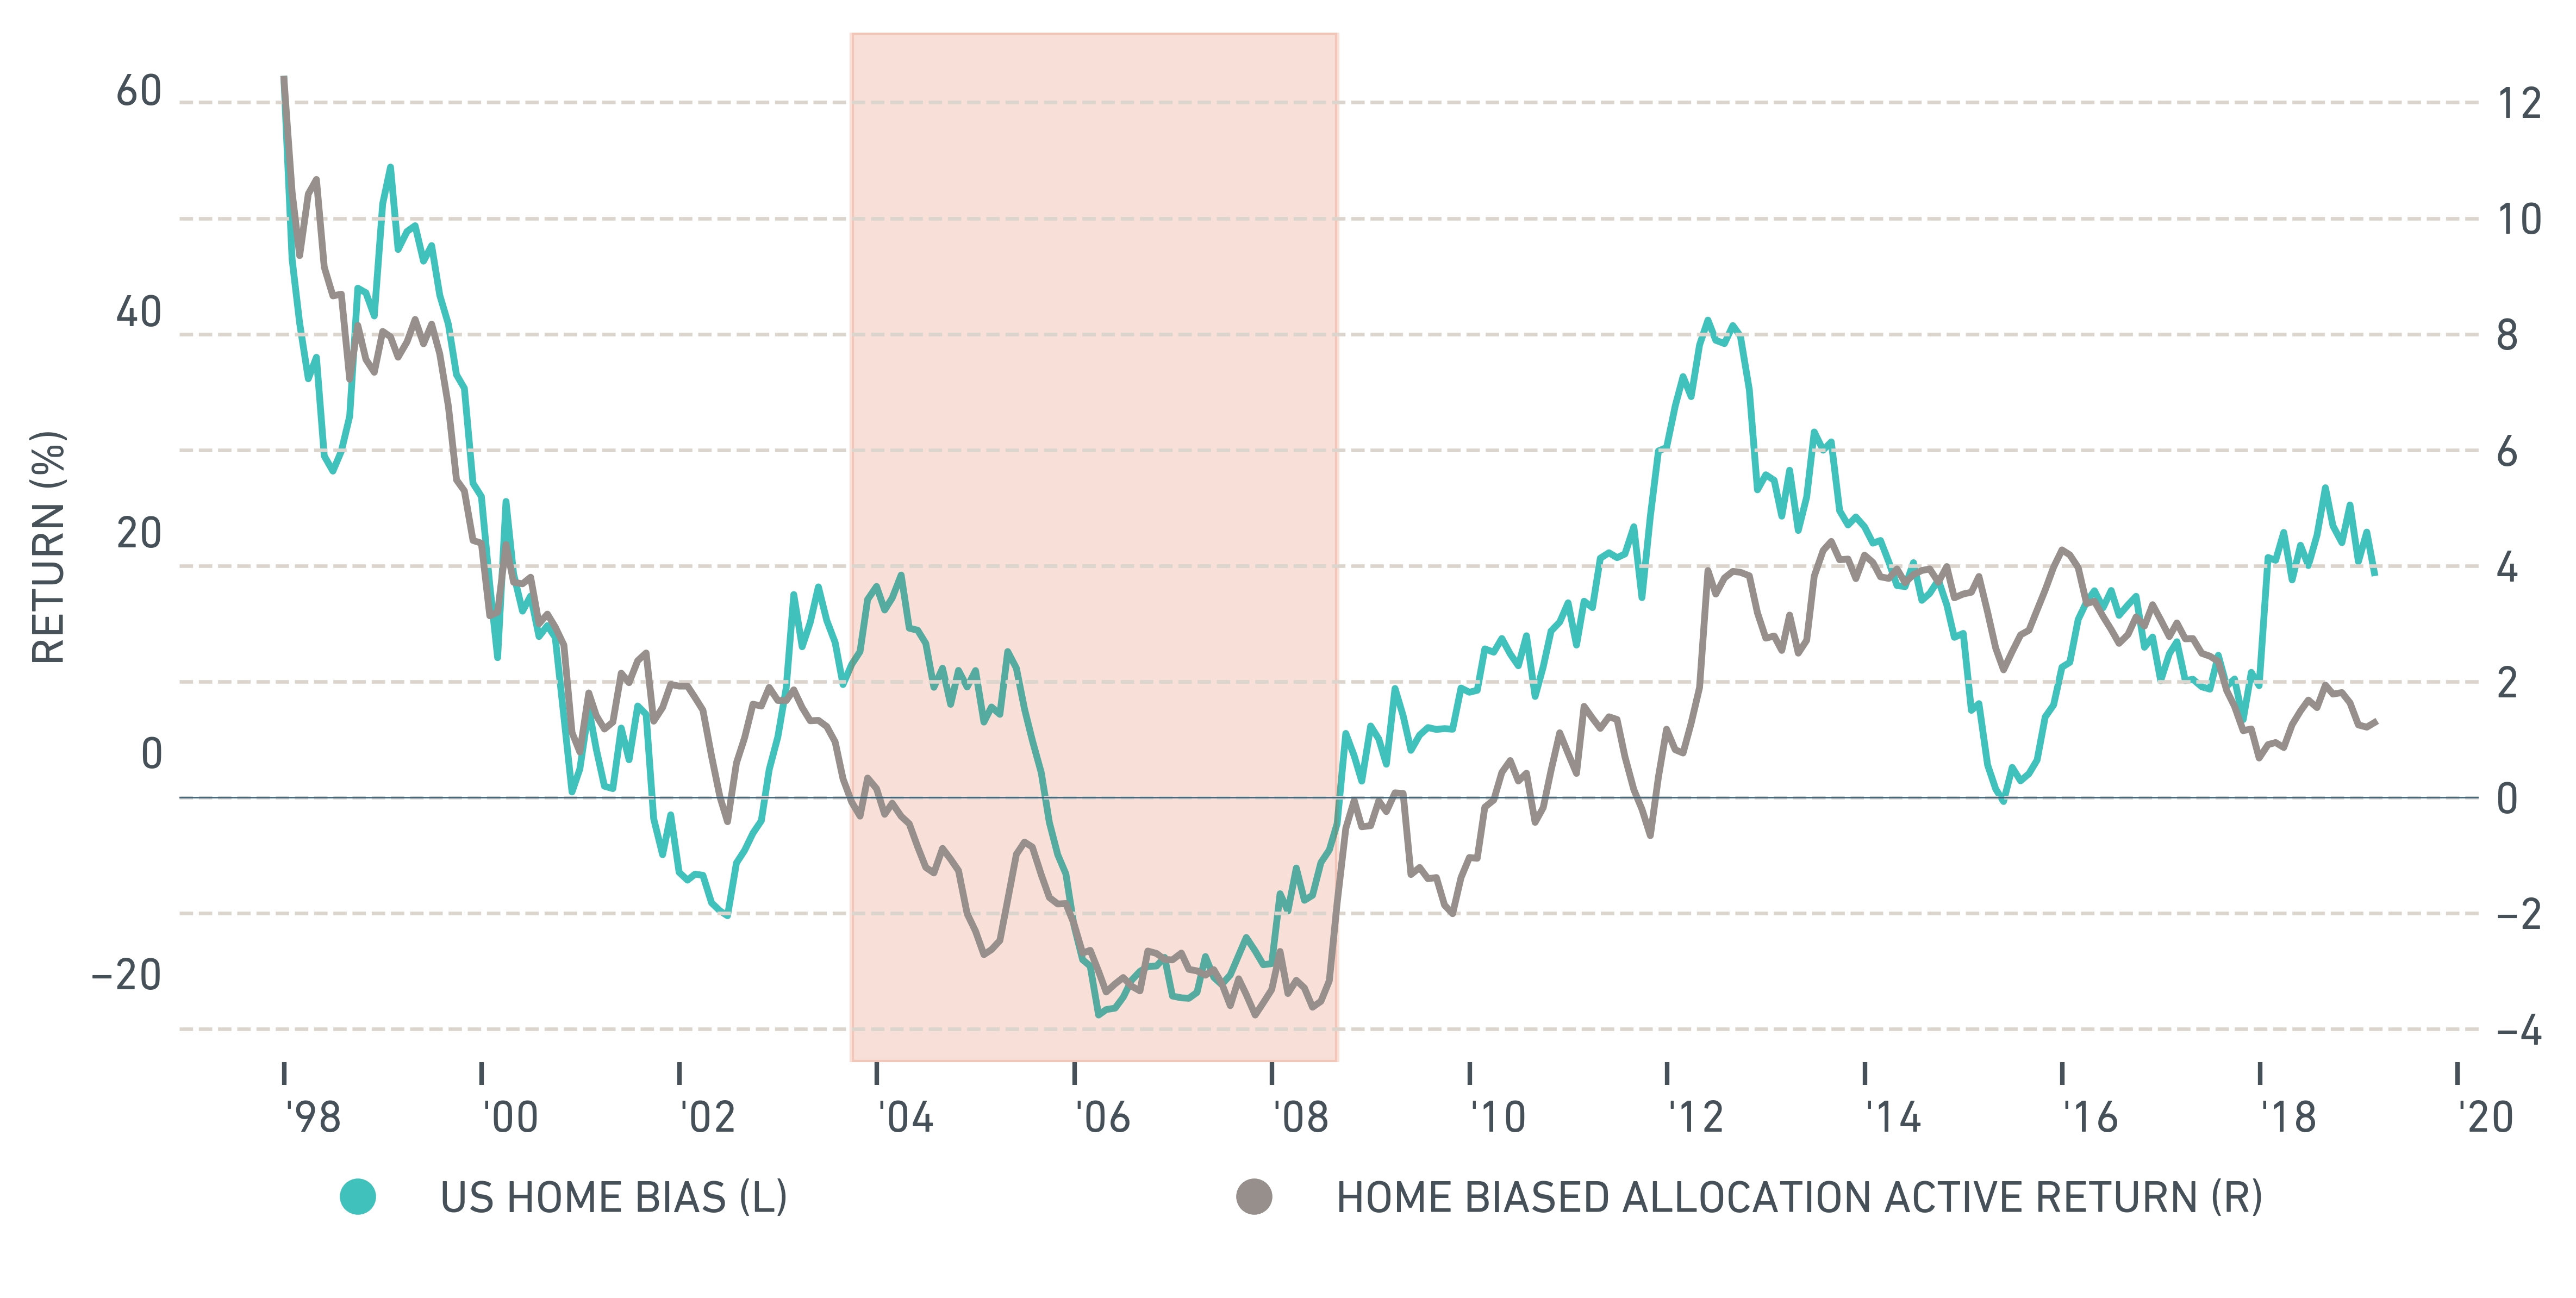 Rolling three-year return of U.S. home bias vs. reference allocation model